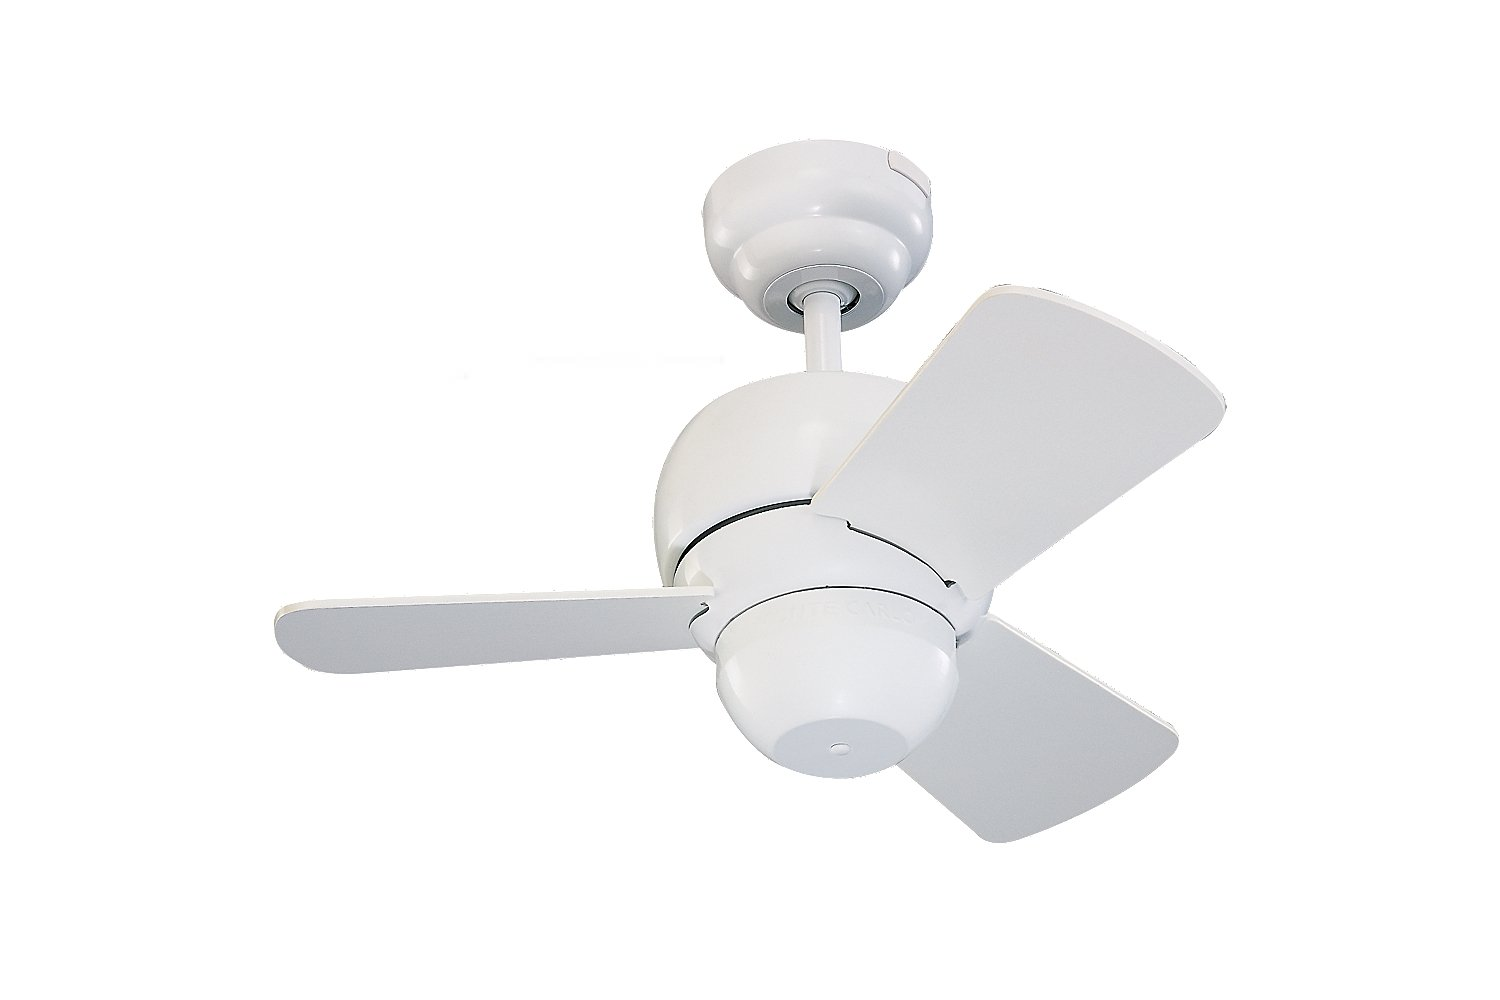 Monte carlo 3tf24pn ceiling fans micro 24 amazon aloadofball Image collections